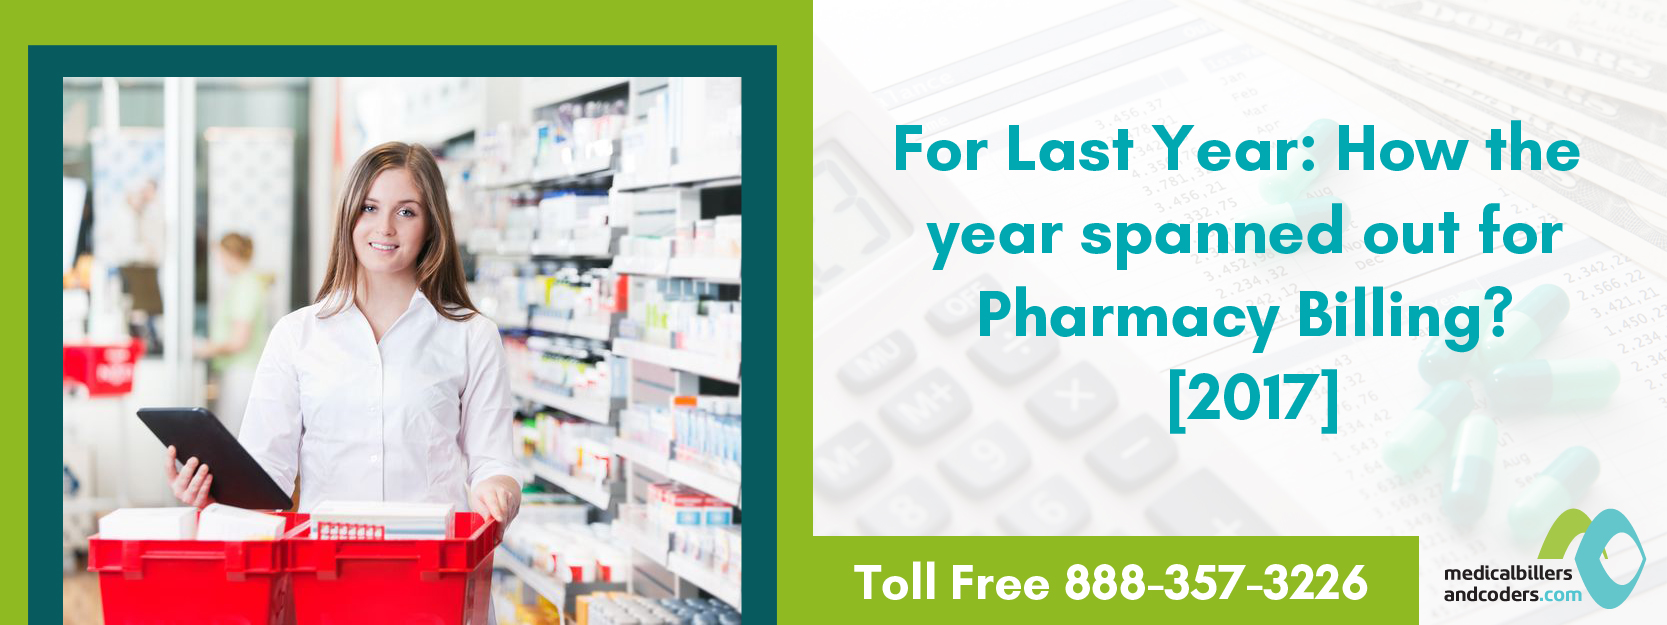 How the Year 2017 Spanned Out for Pharmacy Billing?